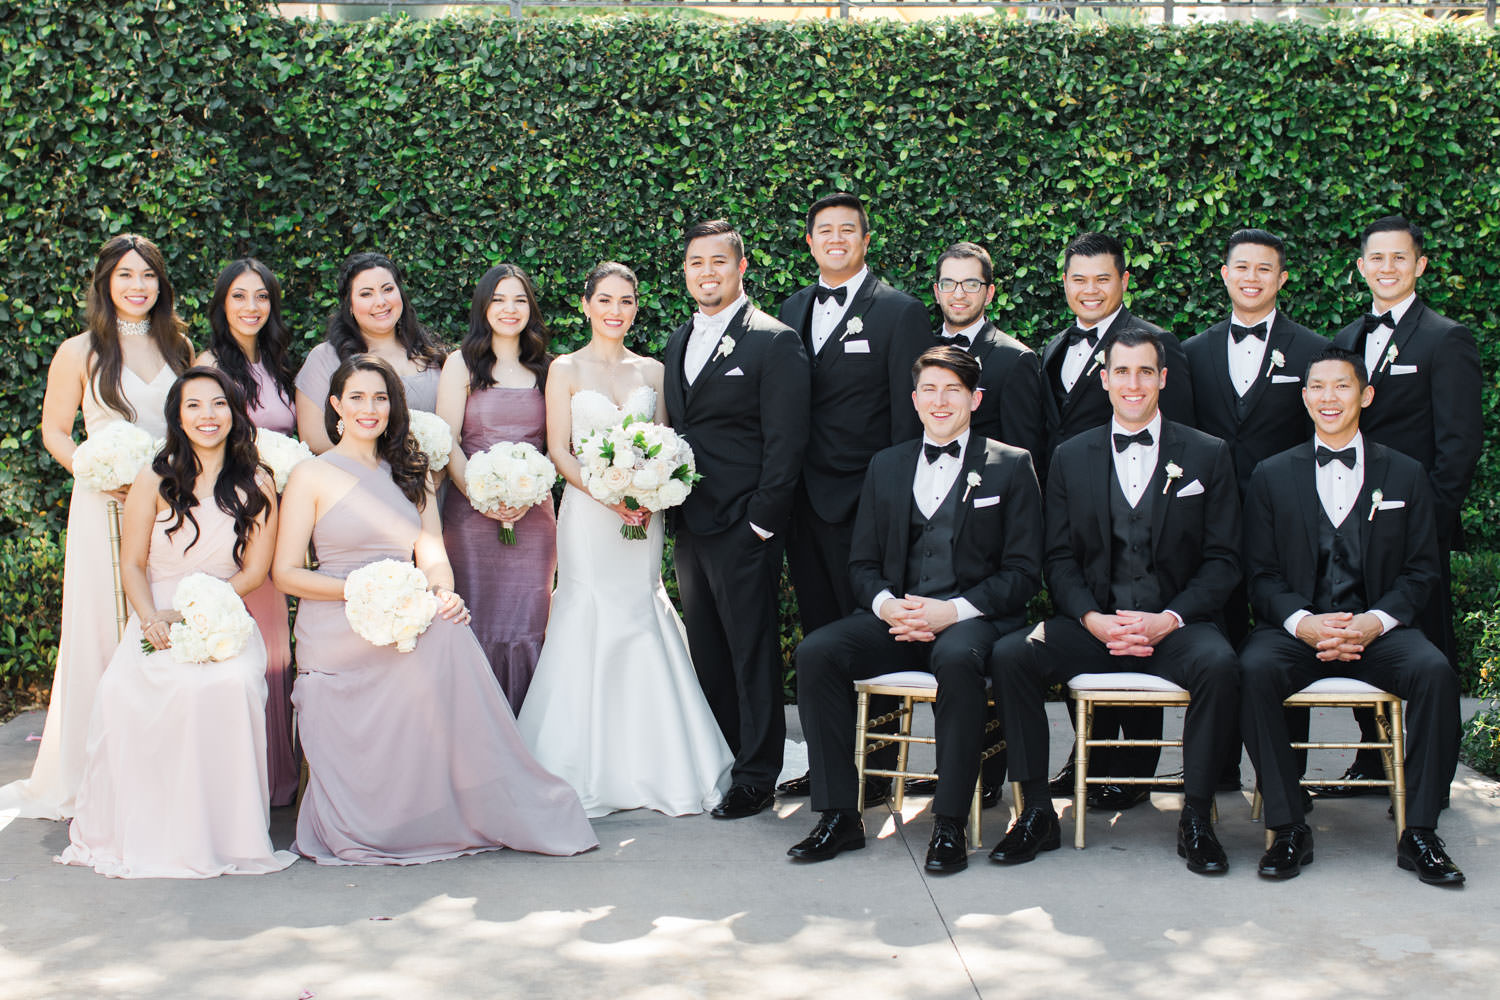 Bridal party portrait with chairs, Santalux Club wedding reception, Cavin Elizabeth Photography